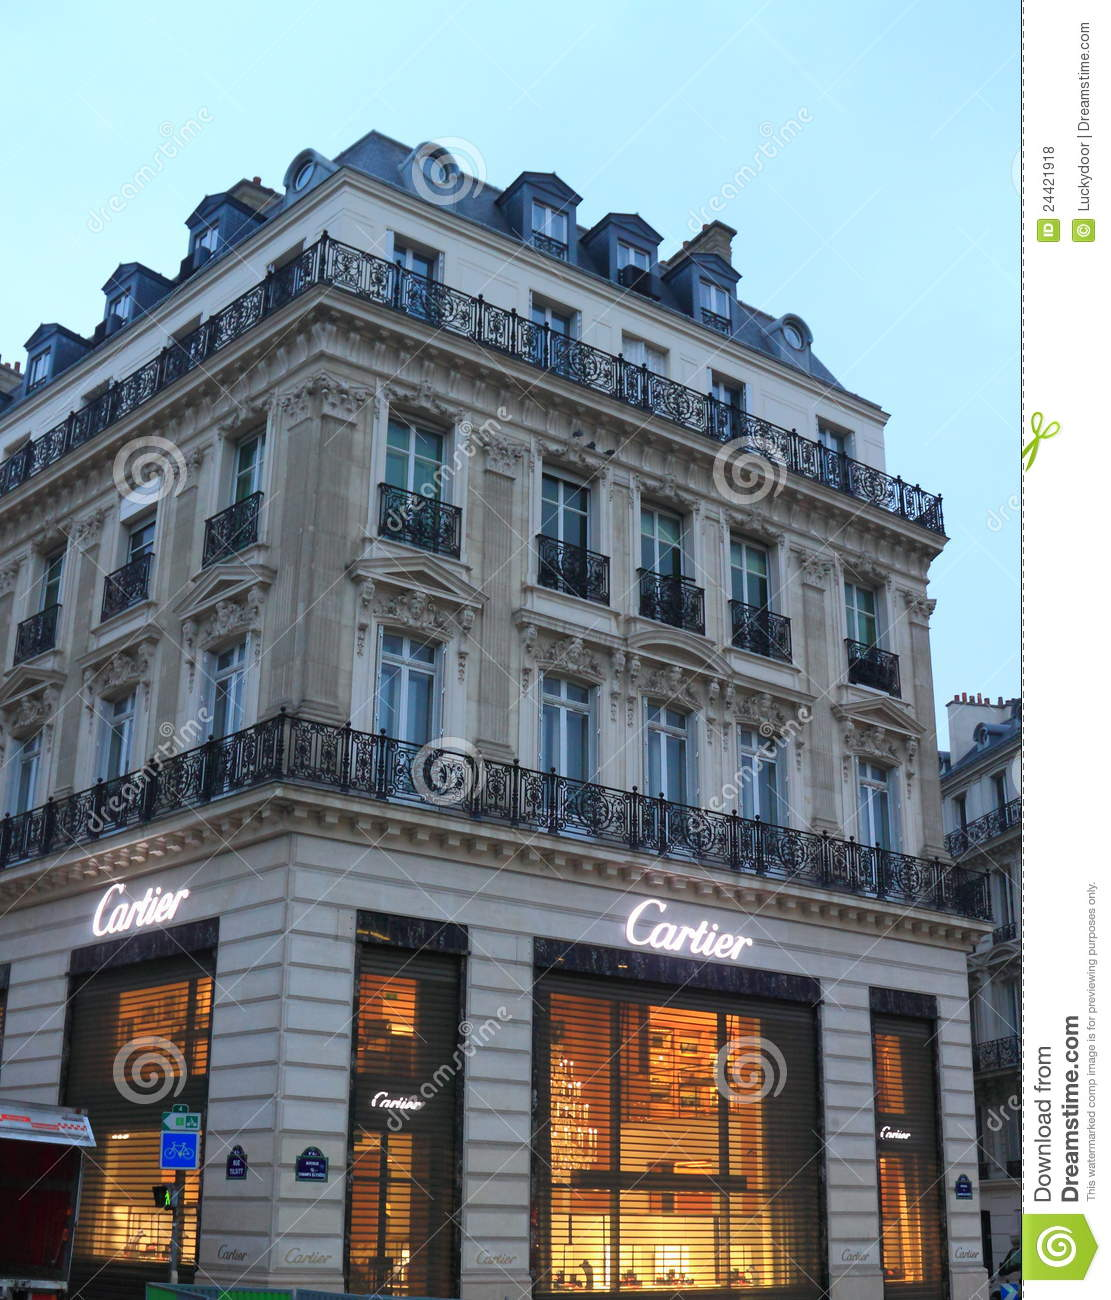 Paris Department Store Christmas Decorations: Cartier Store Editorial Stock Photo. Image Of Street